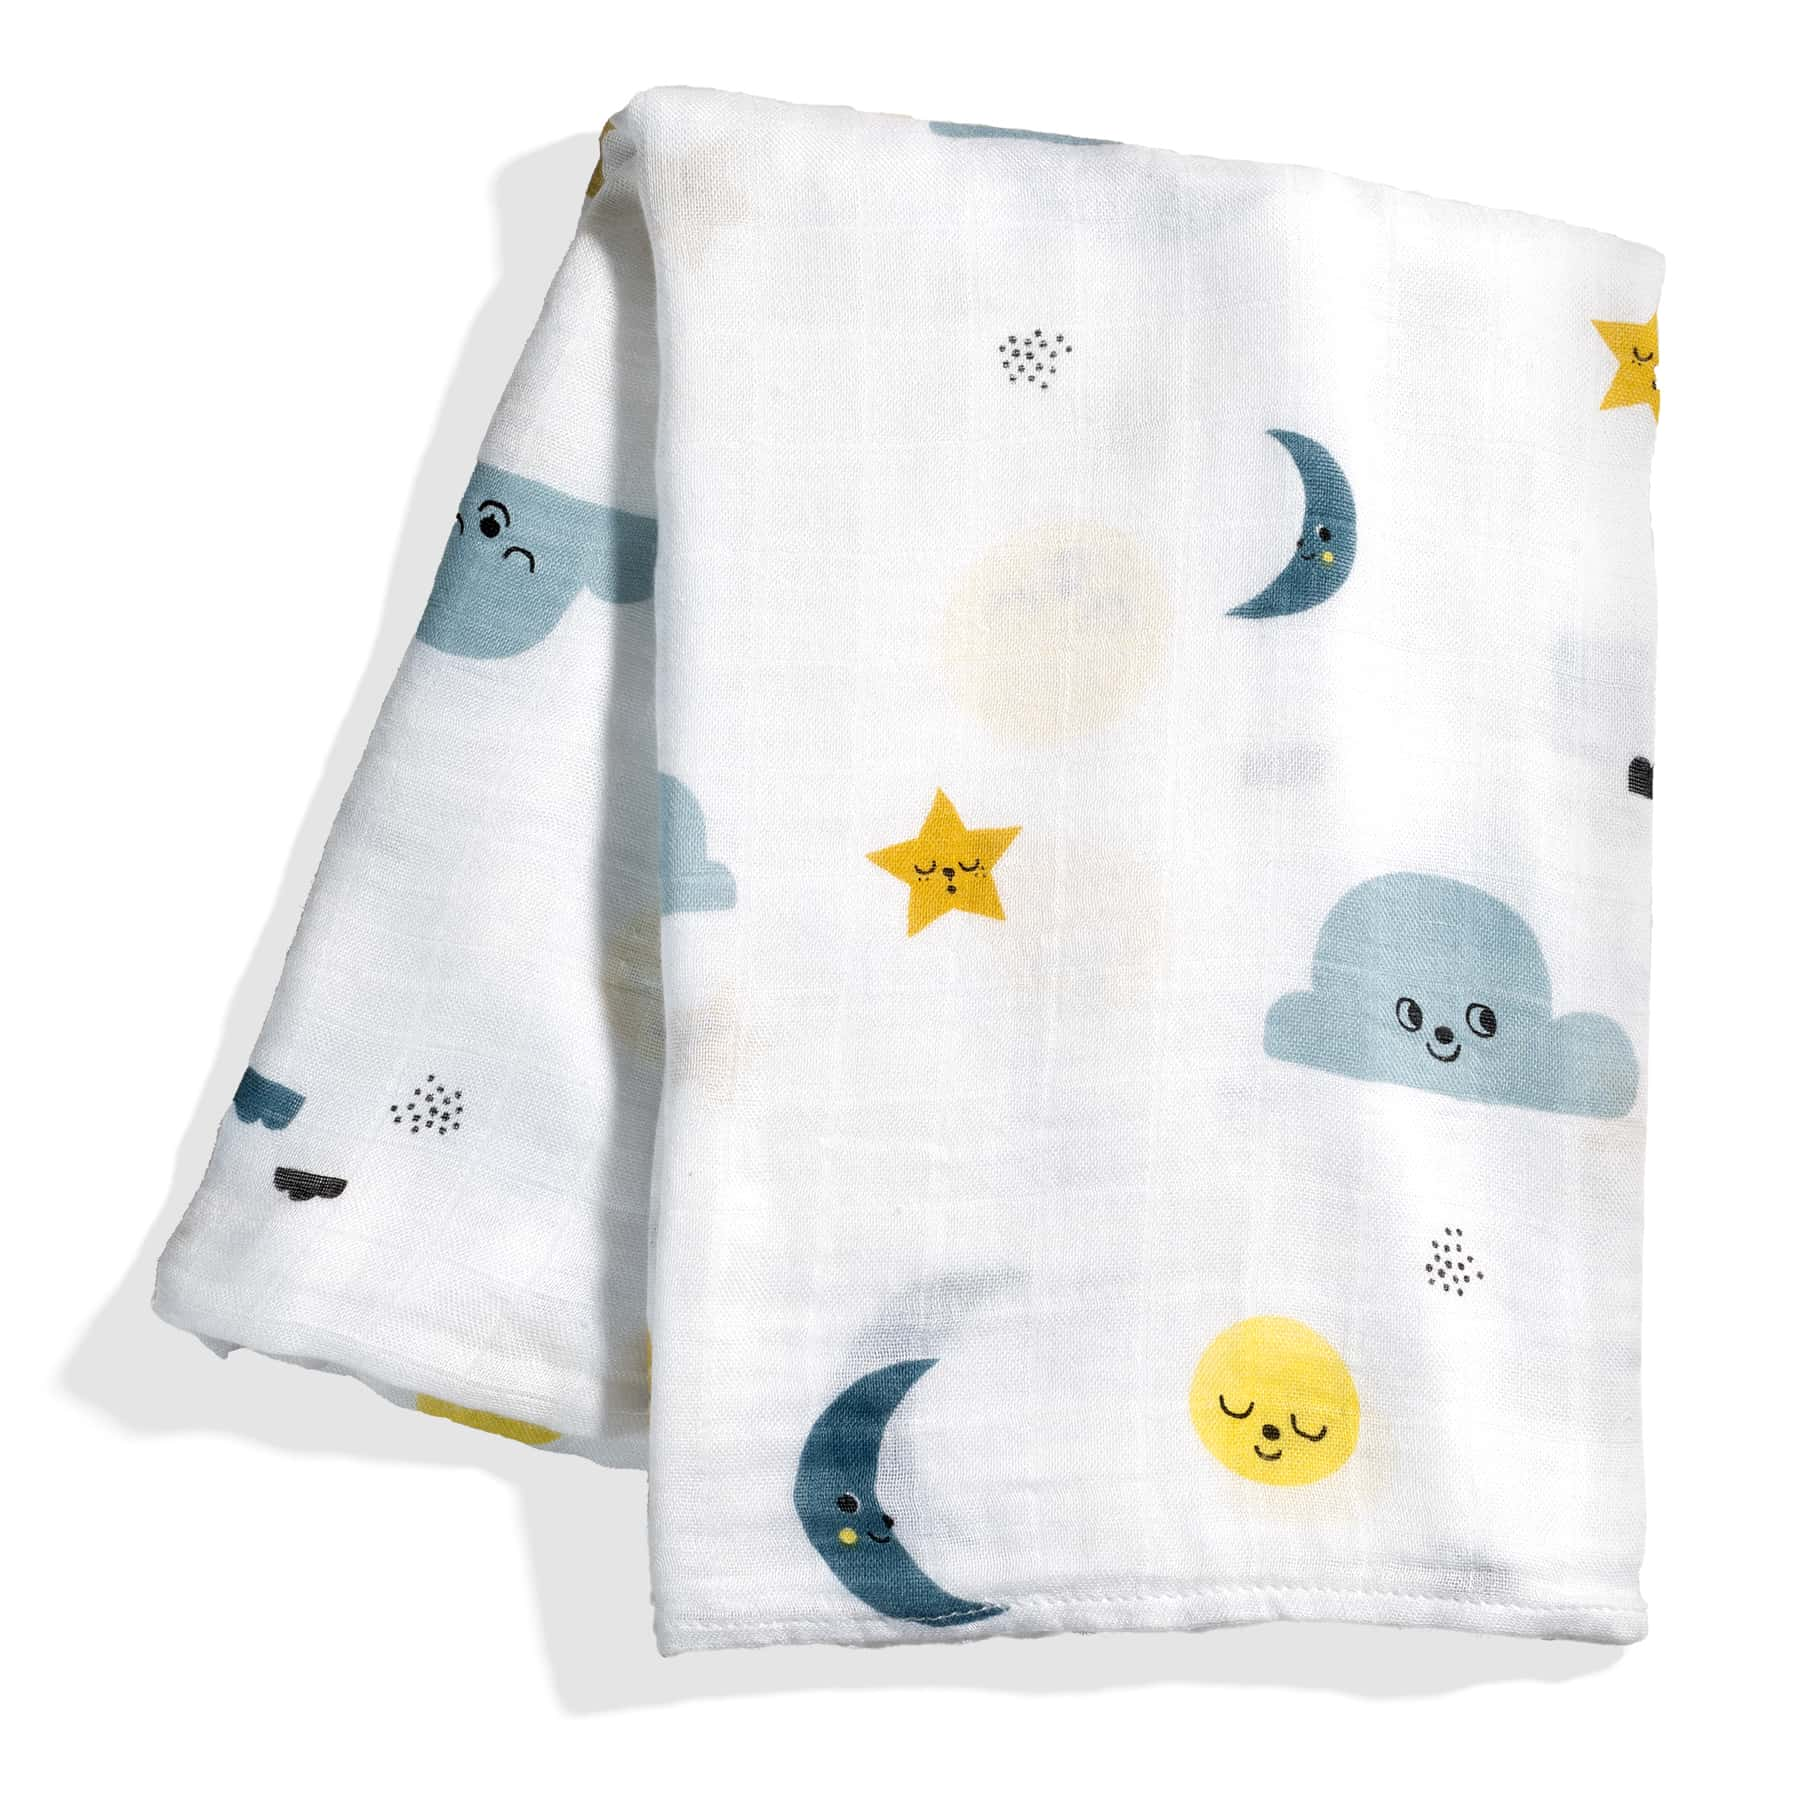 Rookie Humans Crib Sheet and Swaddle Bundle - Moon's Birthday